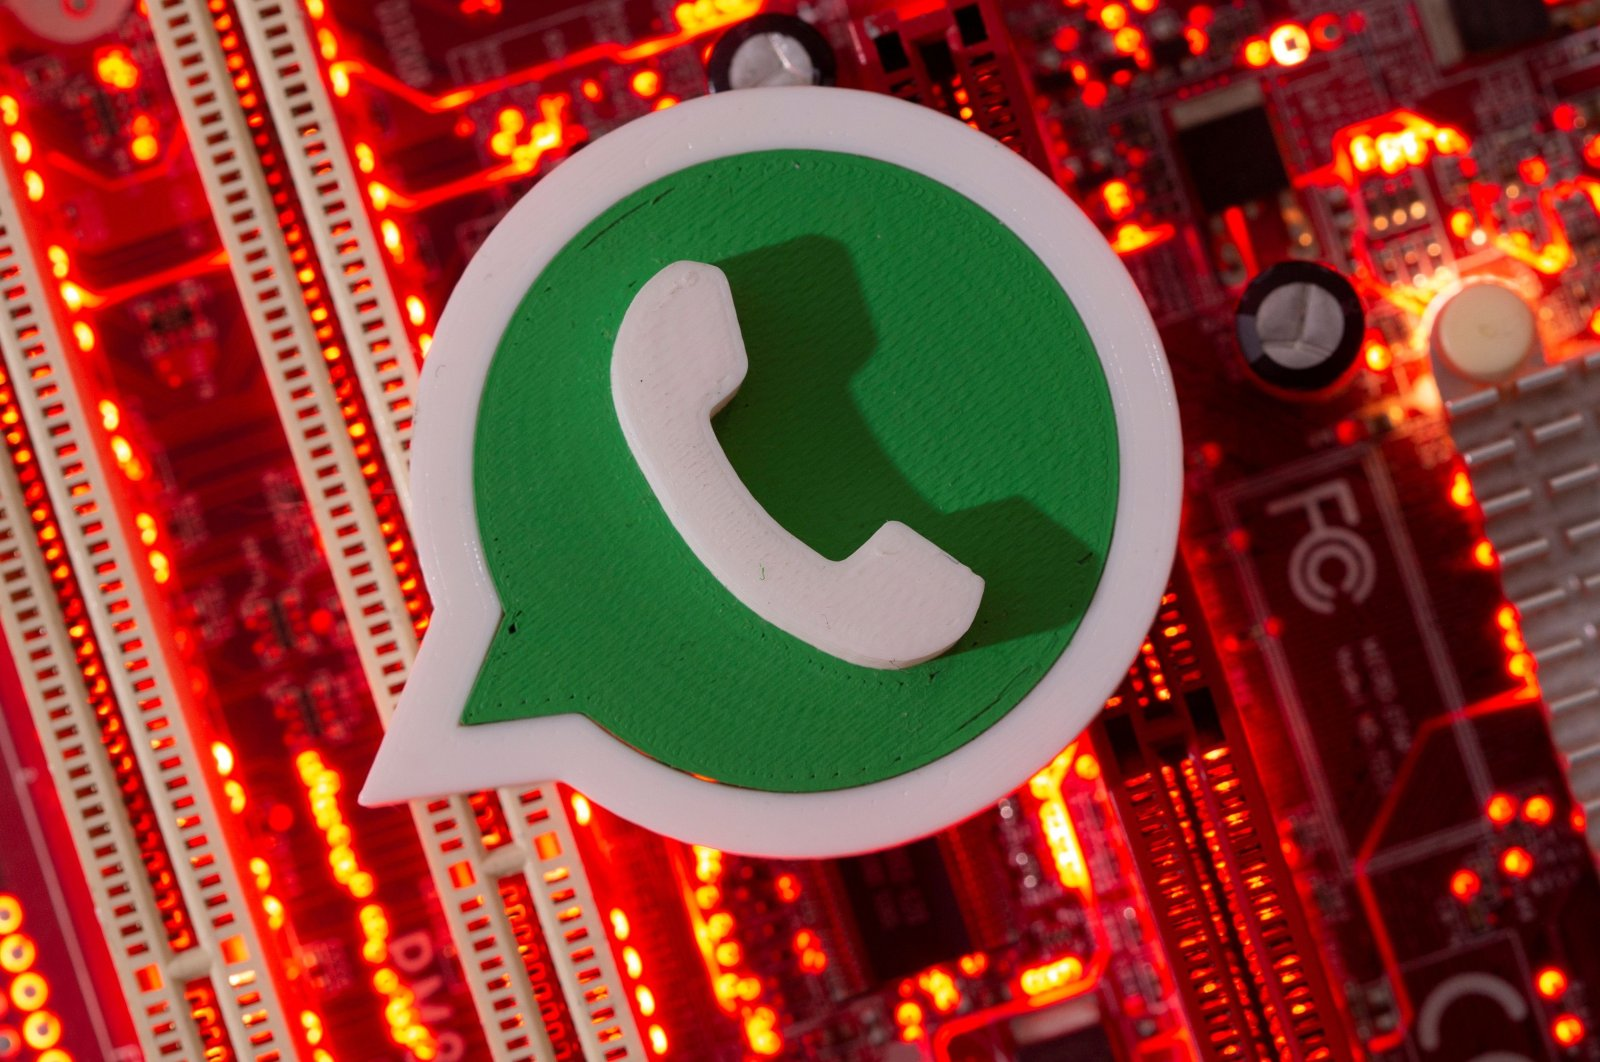 A 3D printed WhatsApp logo is placed on a computer motherboard, January 21, 2021. (Reuters Photo)